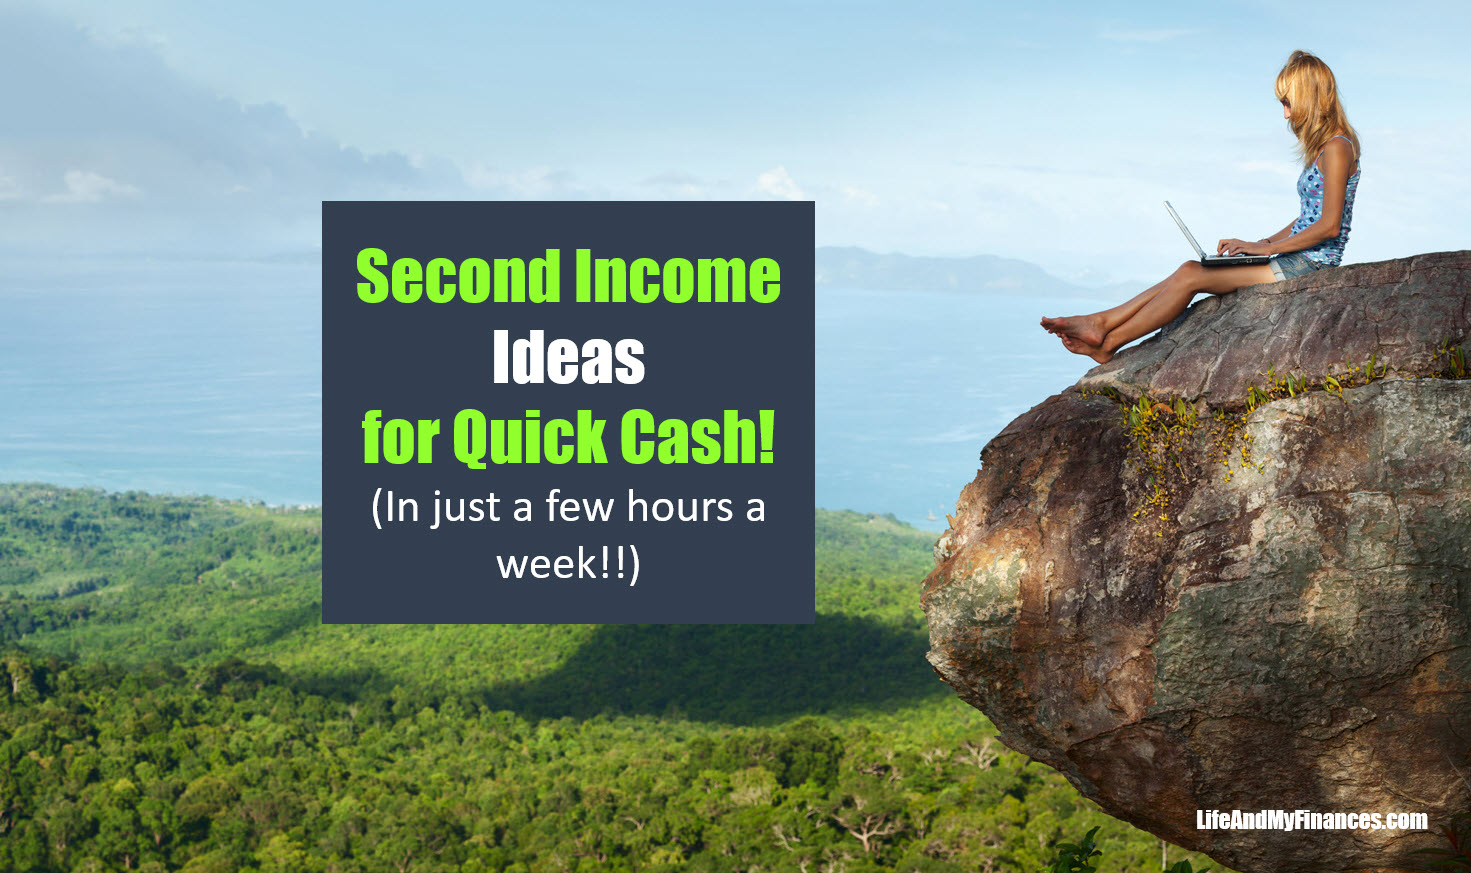 Second Income Ideas For Quick Cash — In Just A Few Hours A Week!